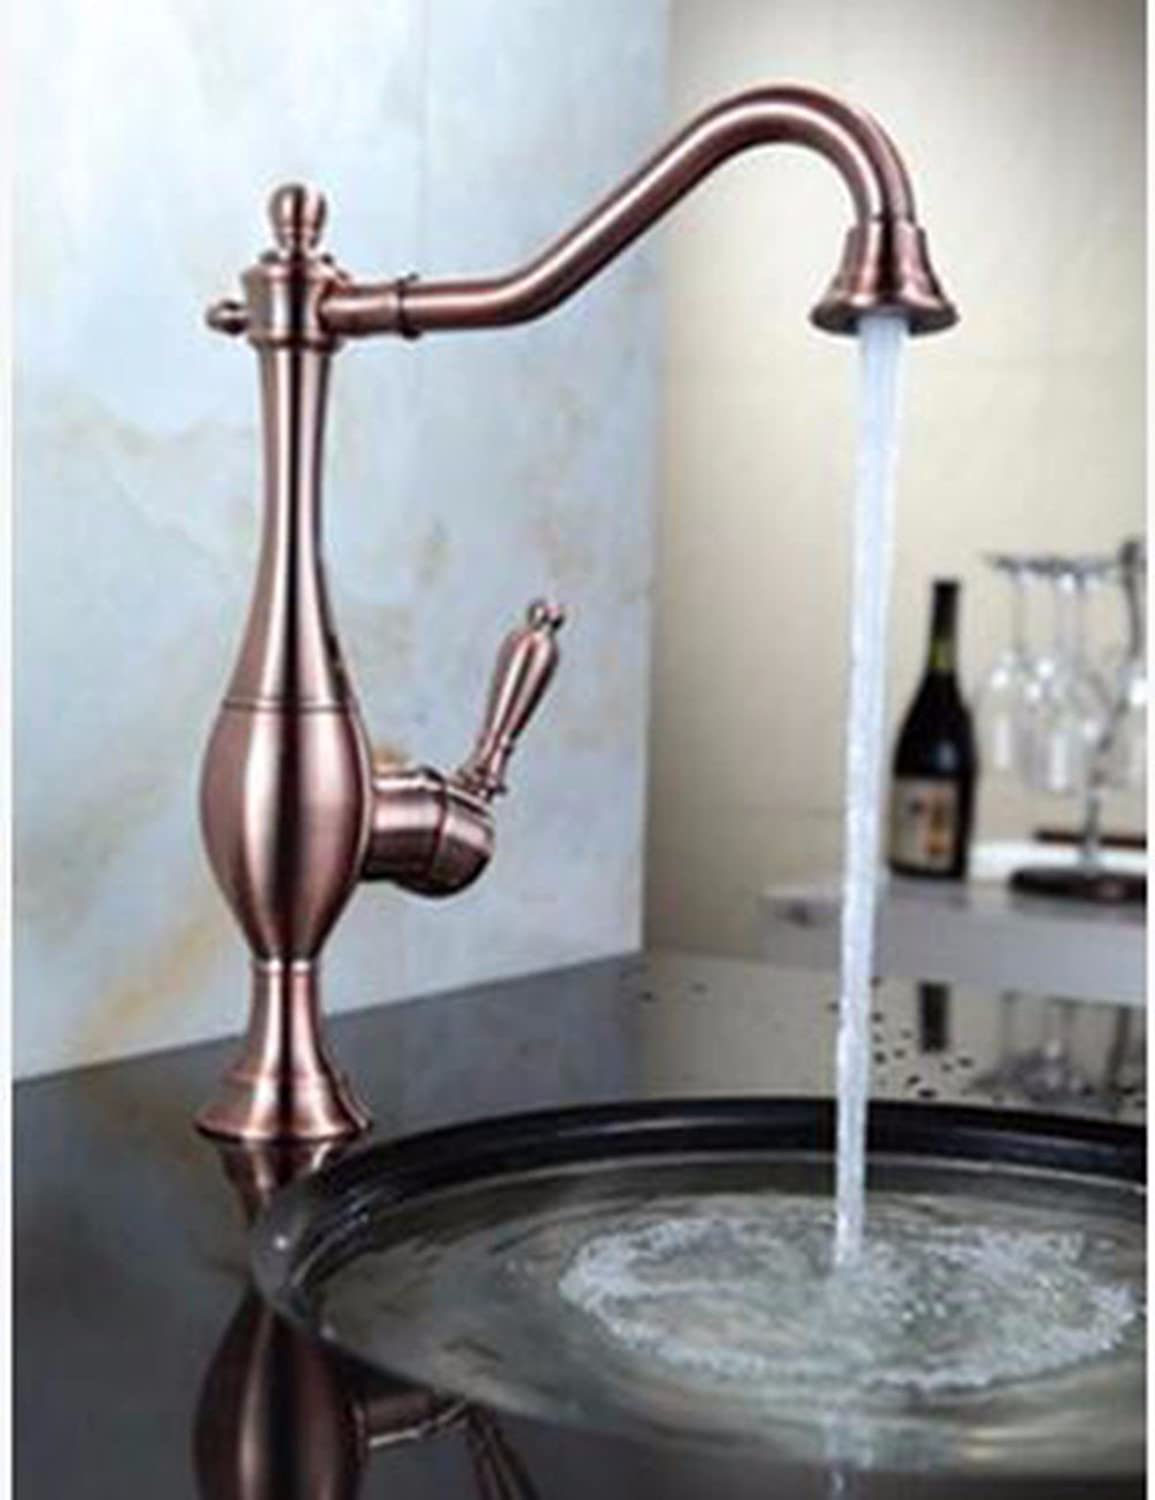 Kitchen Faucet contemporary Black Antique Brass Kitchen Sink Mixer Tap Kitchen Sink Basin Mixer Tap Antique Solid Brass Hot and Cold two handle tap Black Mixer Taps